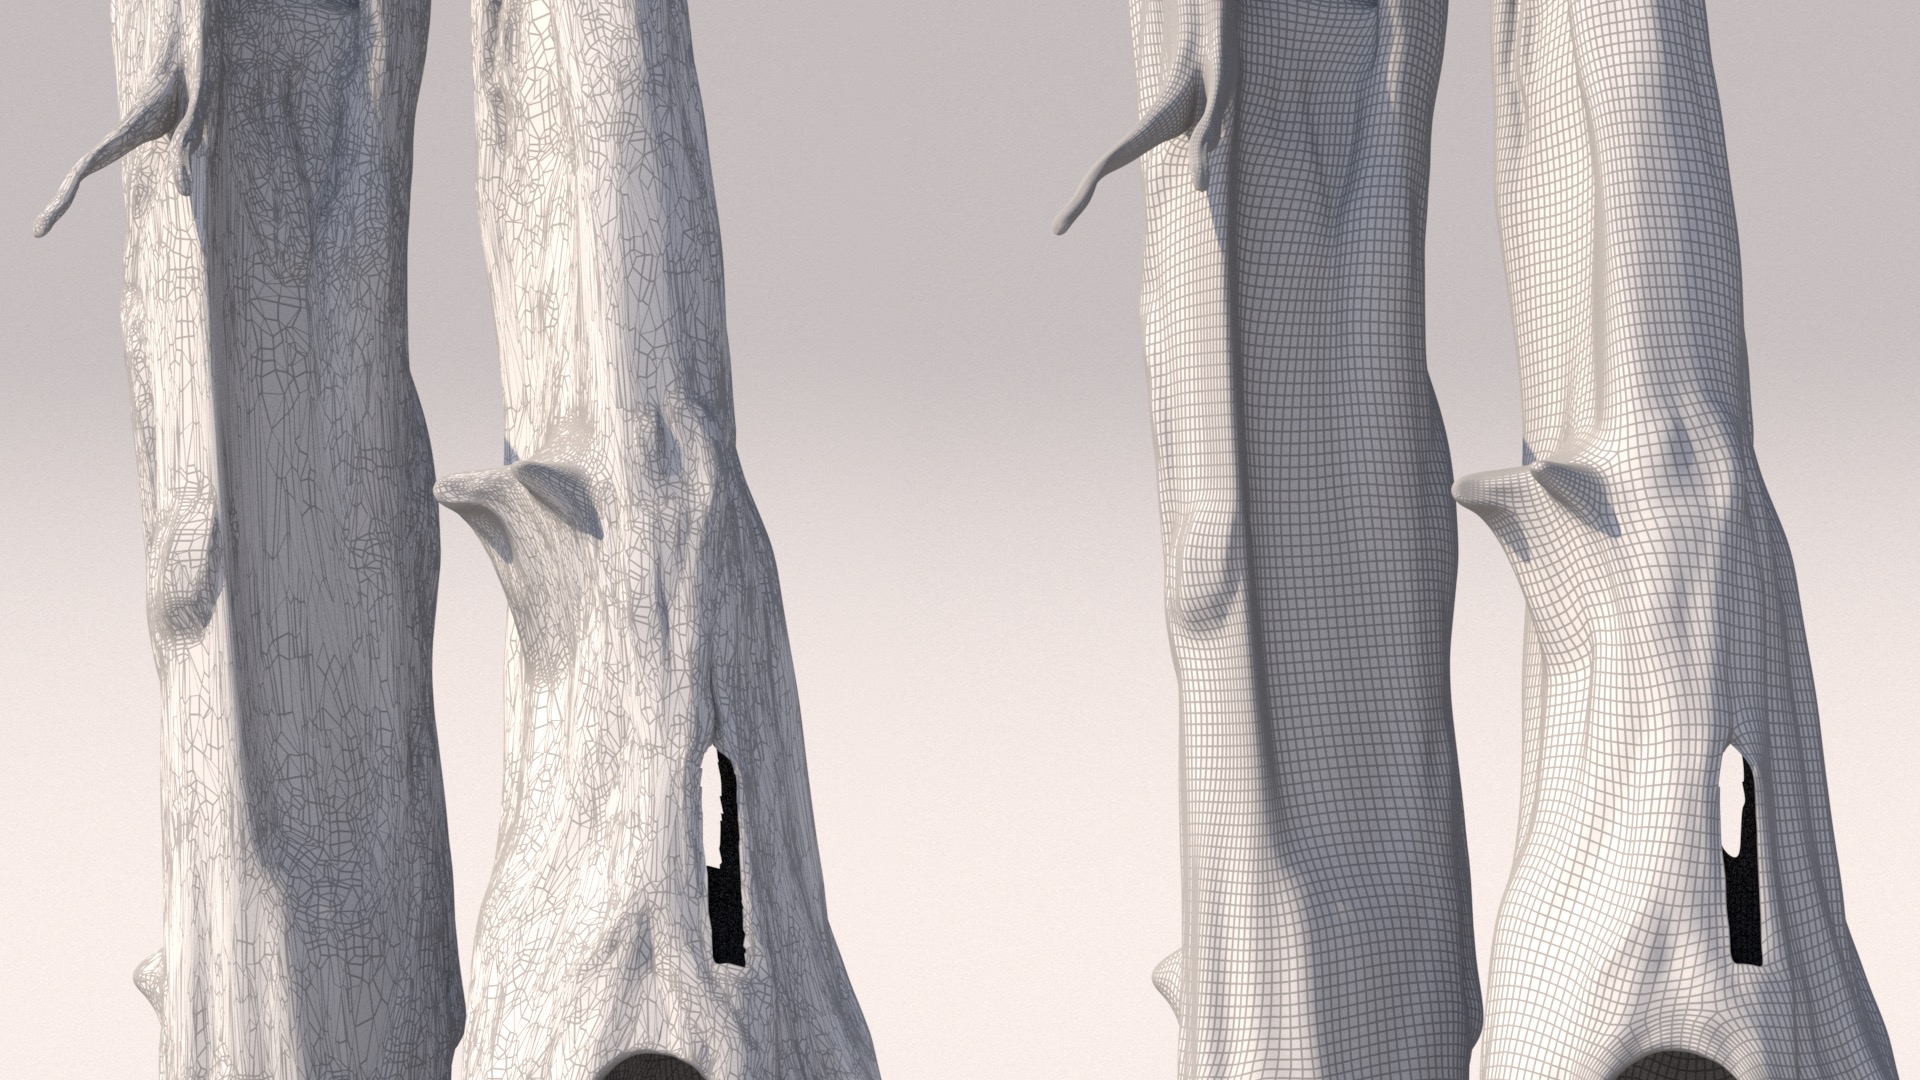 Figure 7: Original mesh wireframe on the left, my retopologized version on the right.